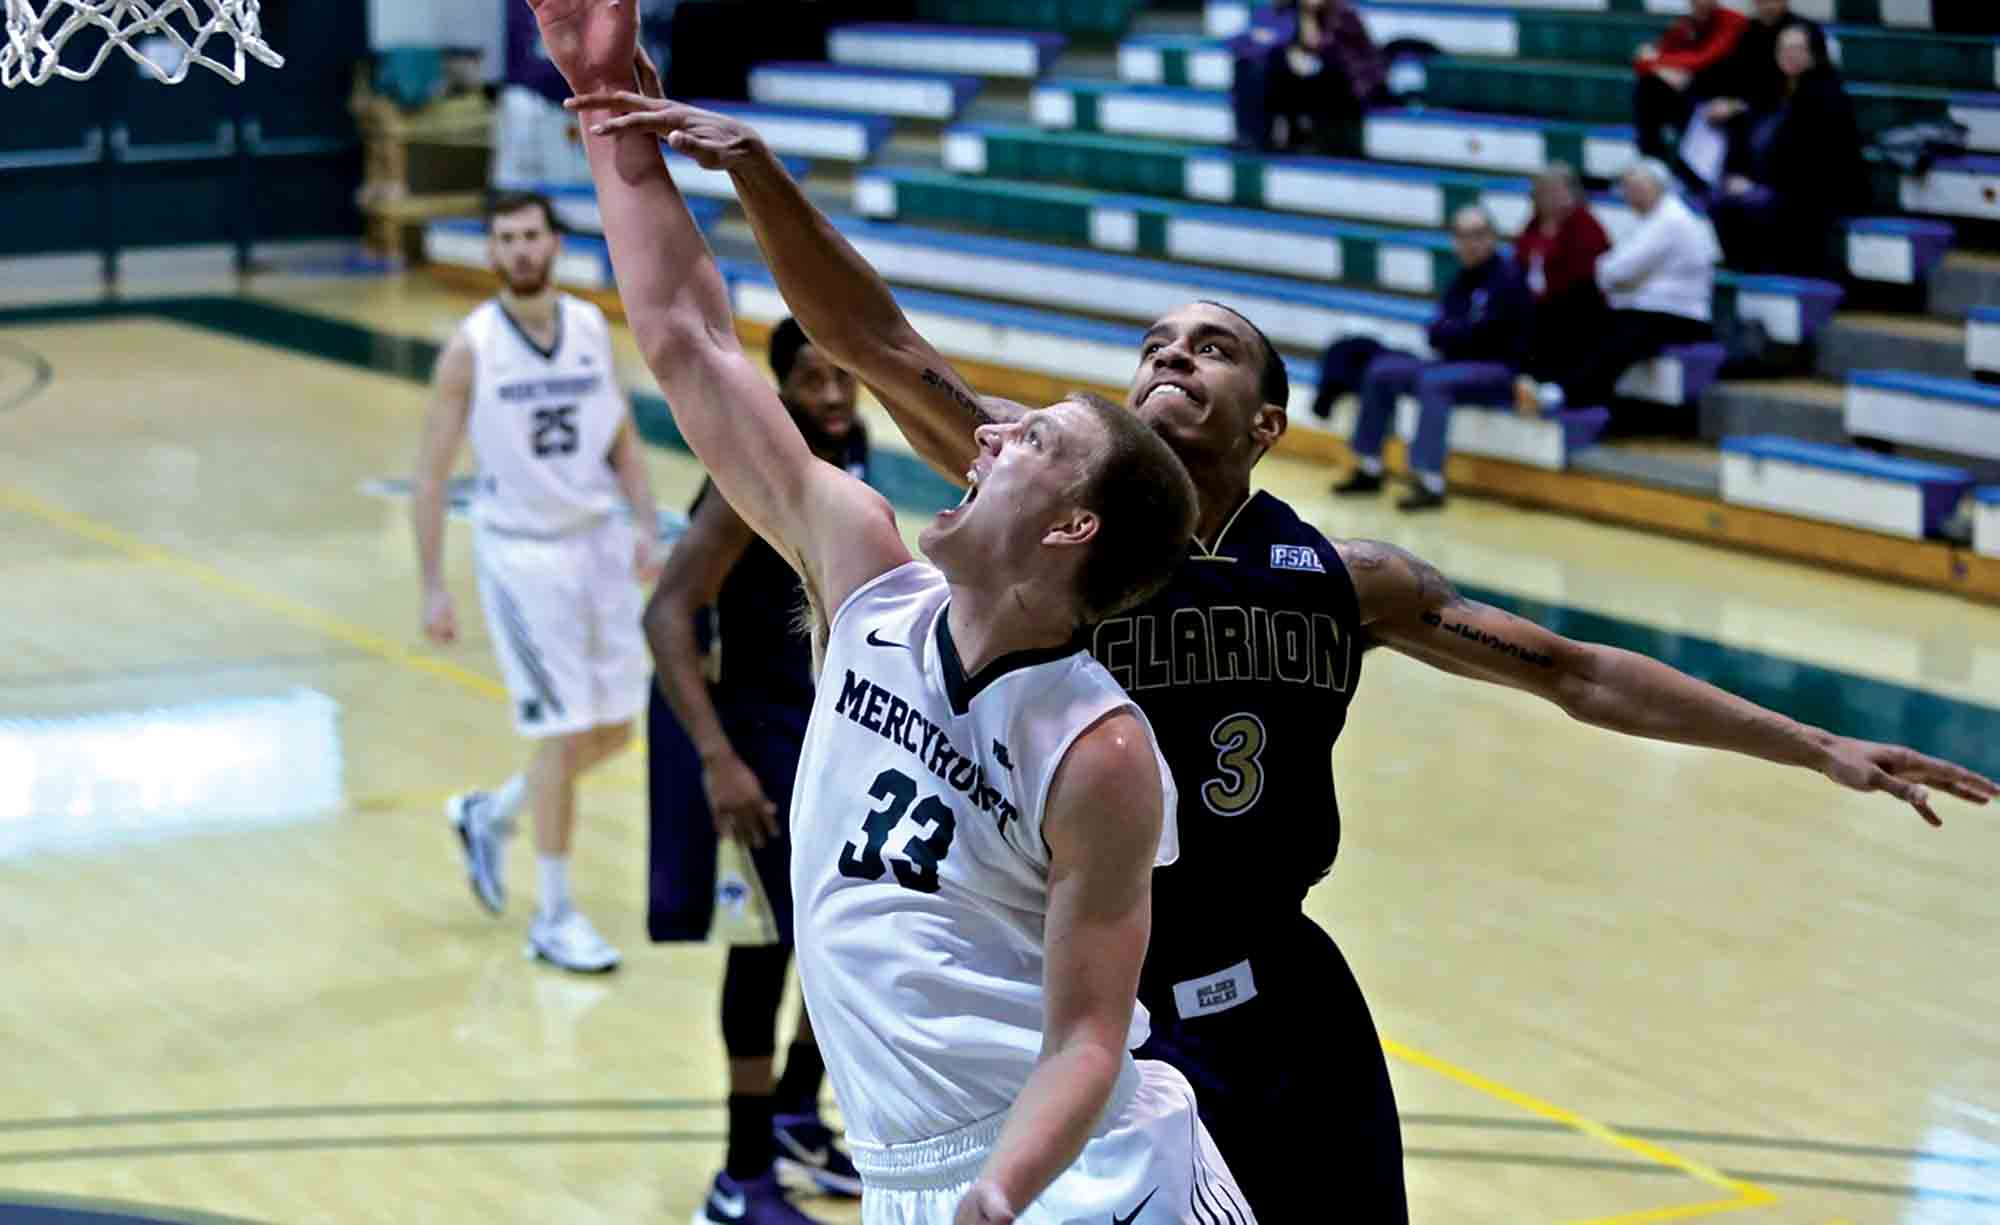 During the Mercyhurst's game against Clarion on Saturday, Feb. 6, senior forward Andy Hoying scored 12 points. The men are 15-7 overall and 12-6 in the conference.